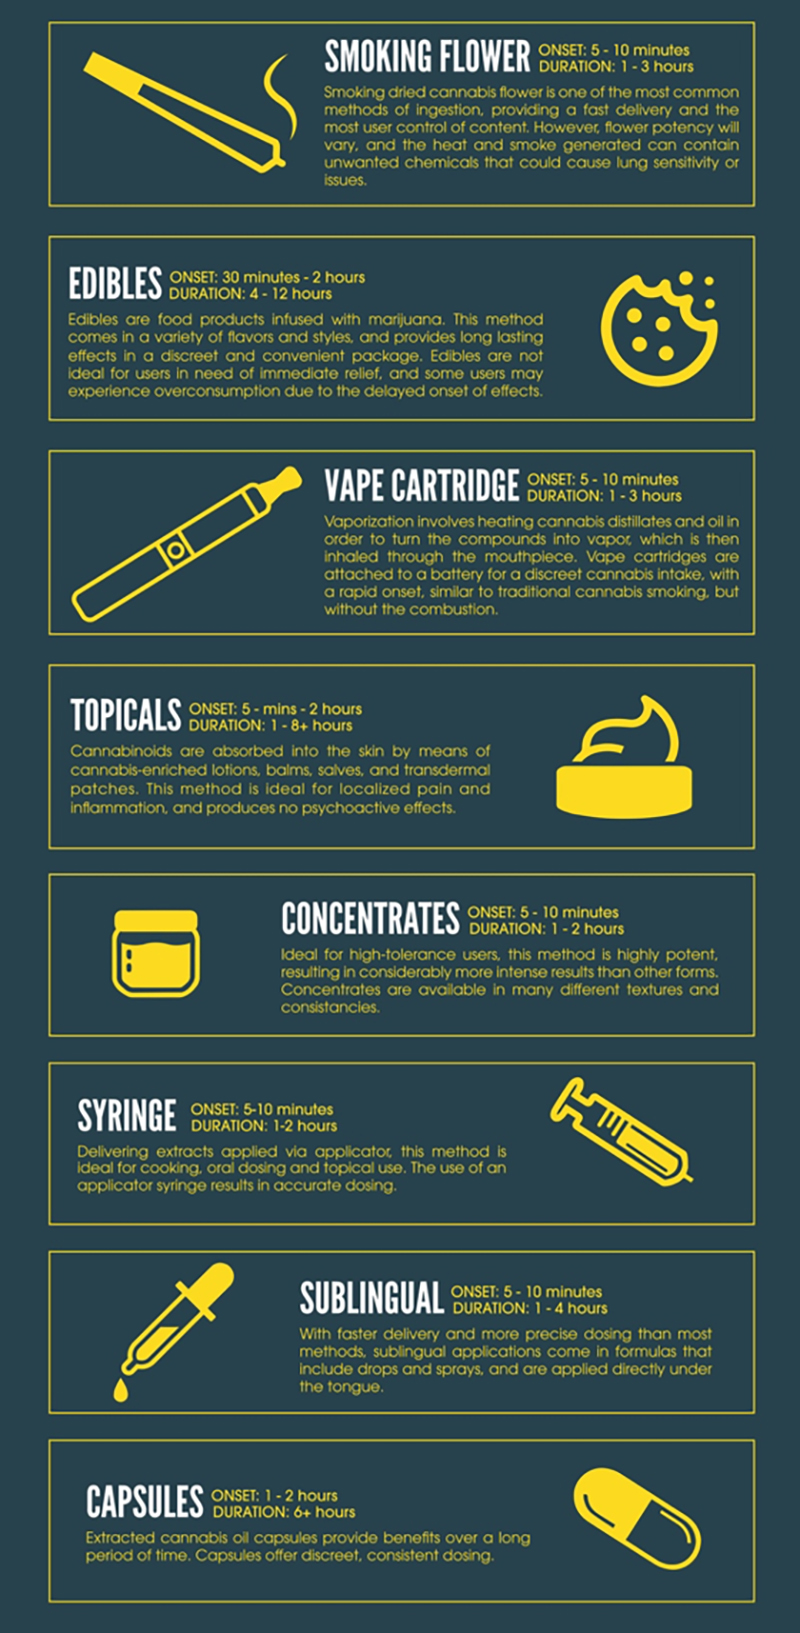 Infographic on the methods of cannabis consumptions